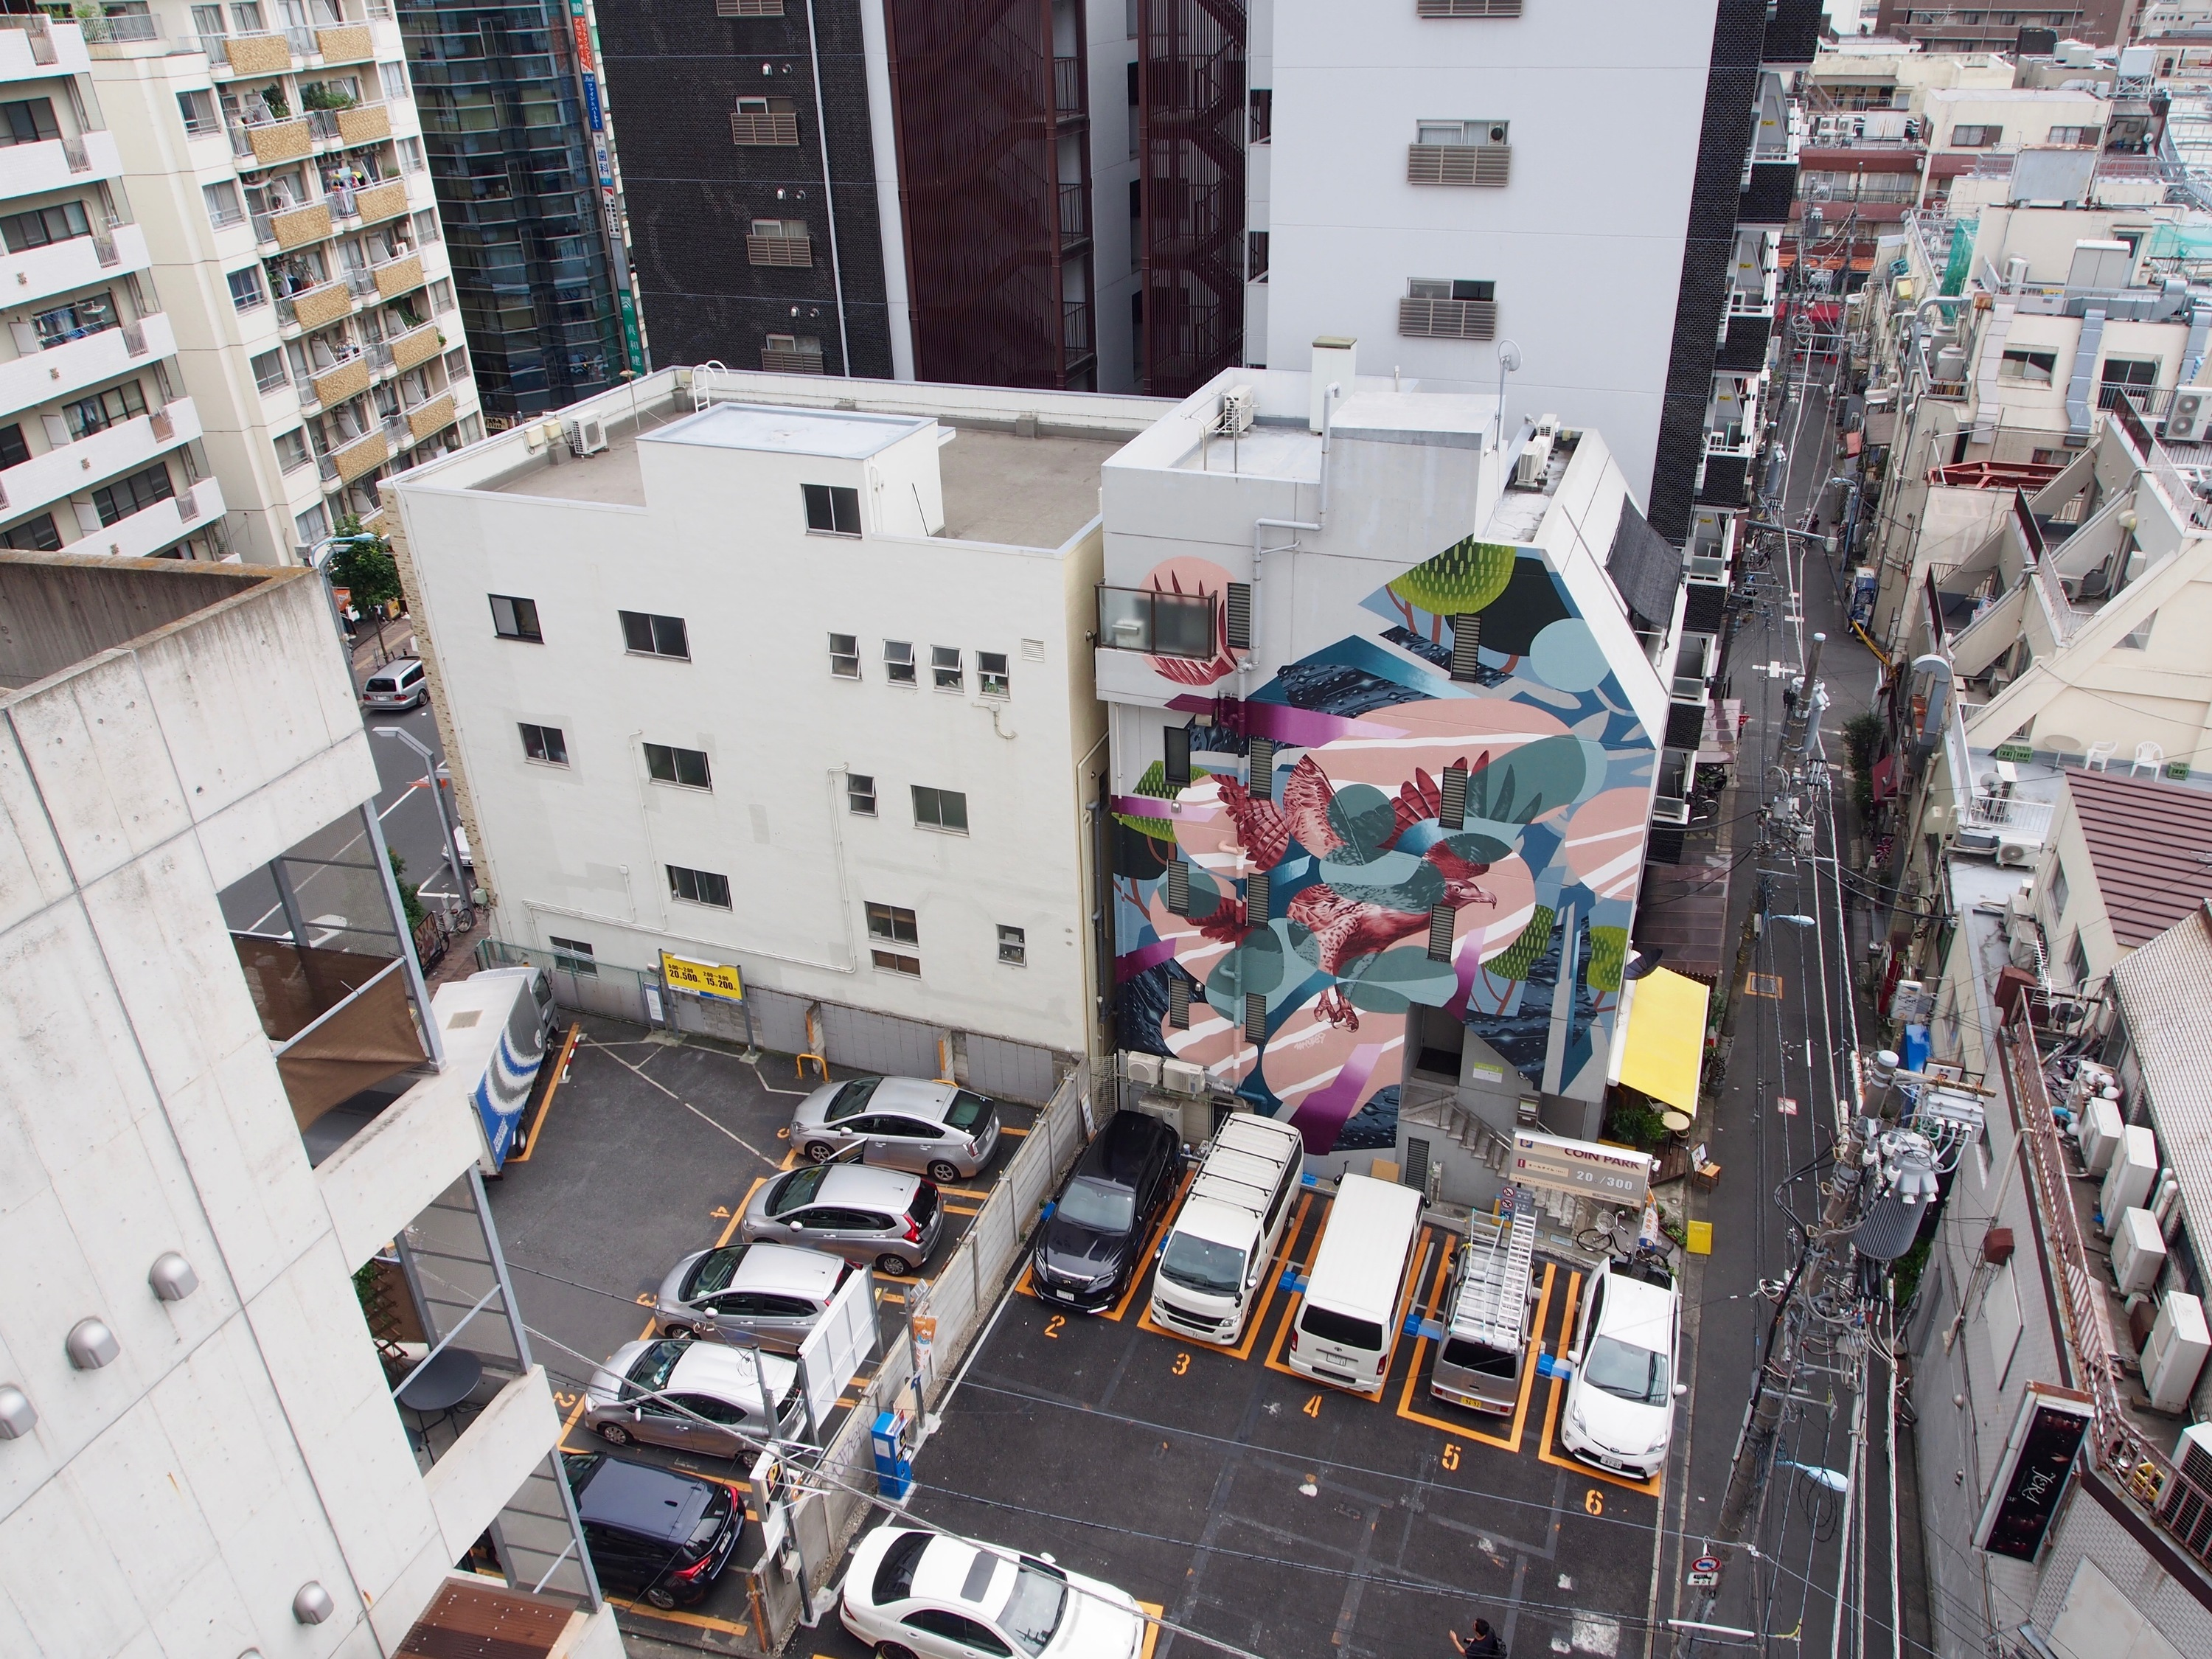 Koenji Mural City Project by Whole9